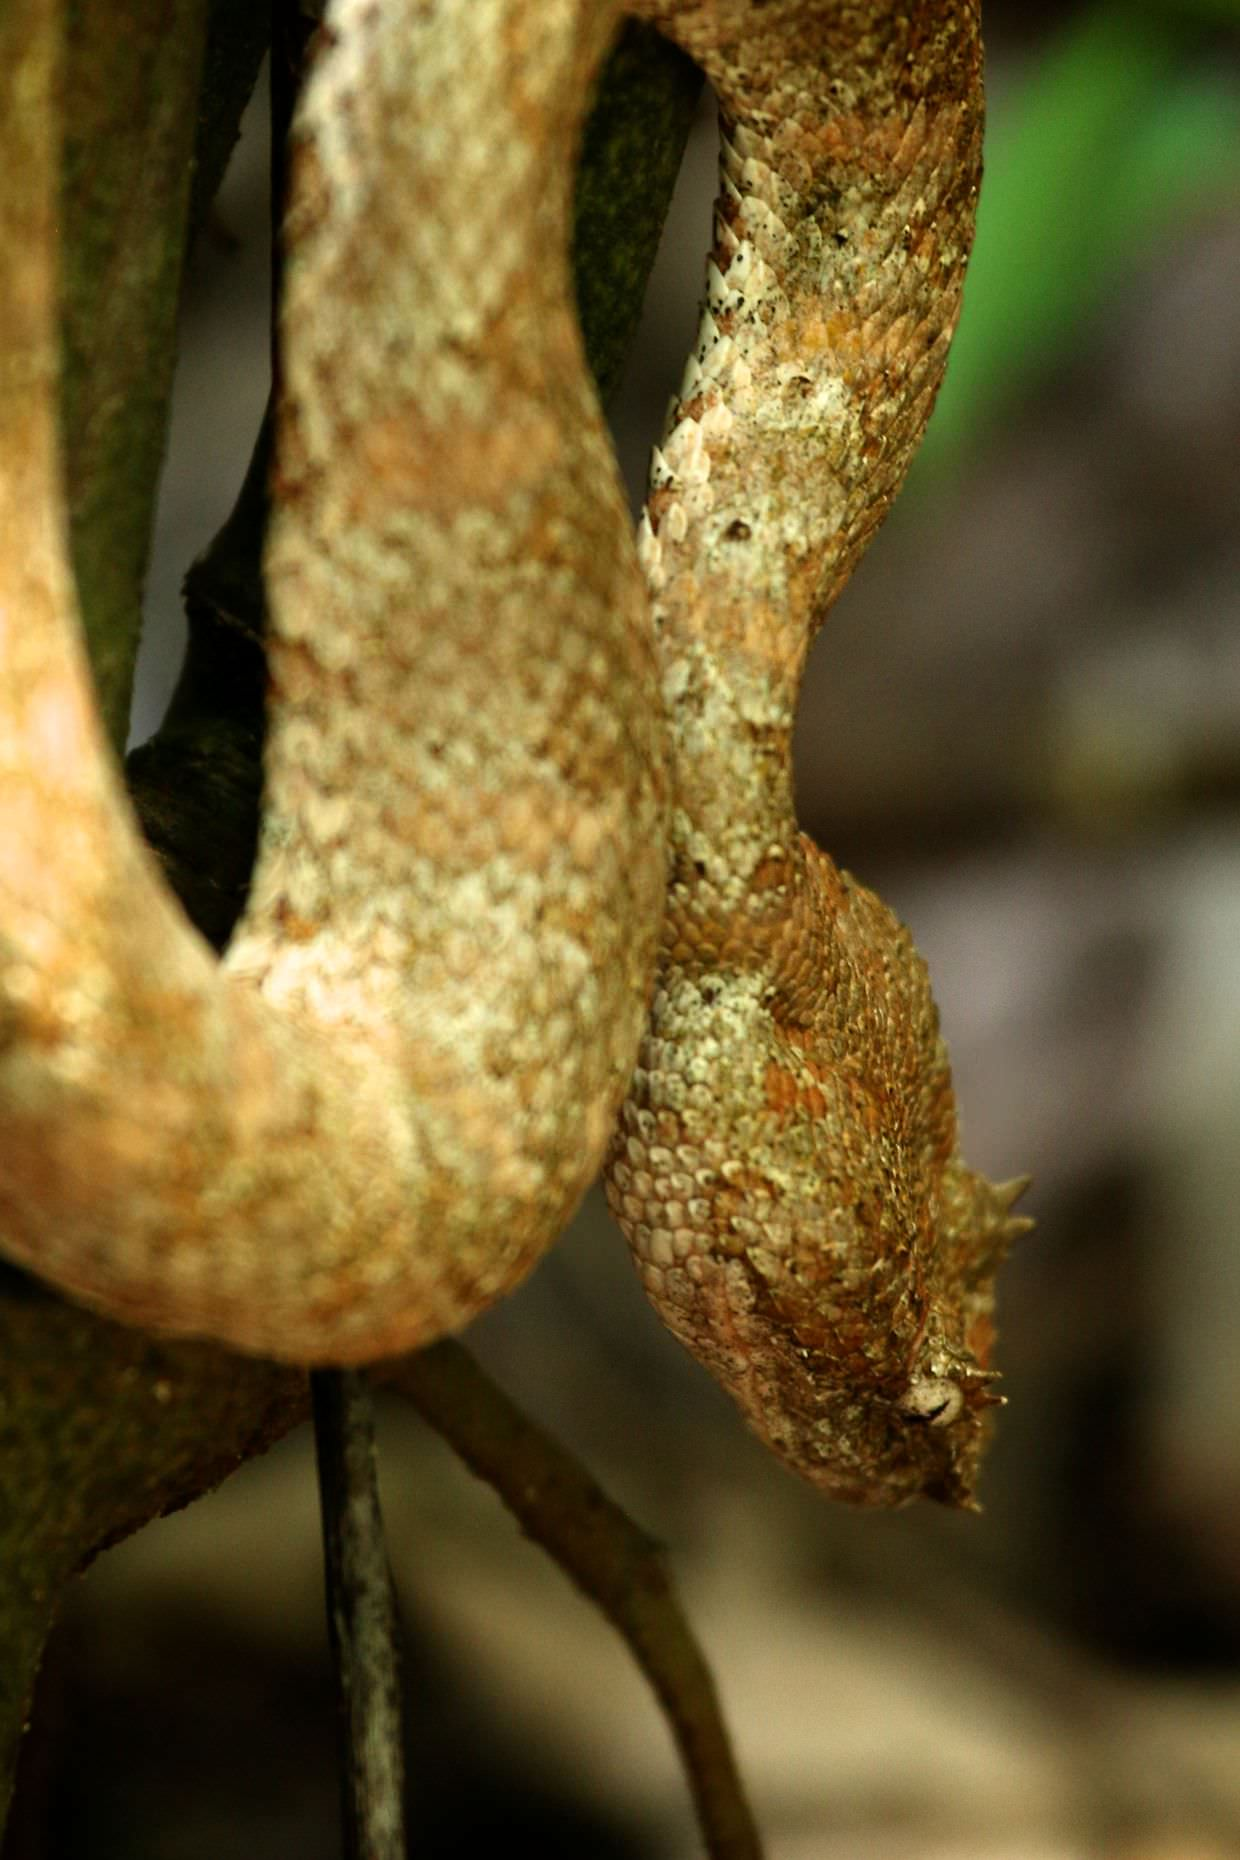 Brown eyelash pit viper